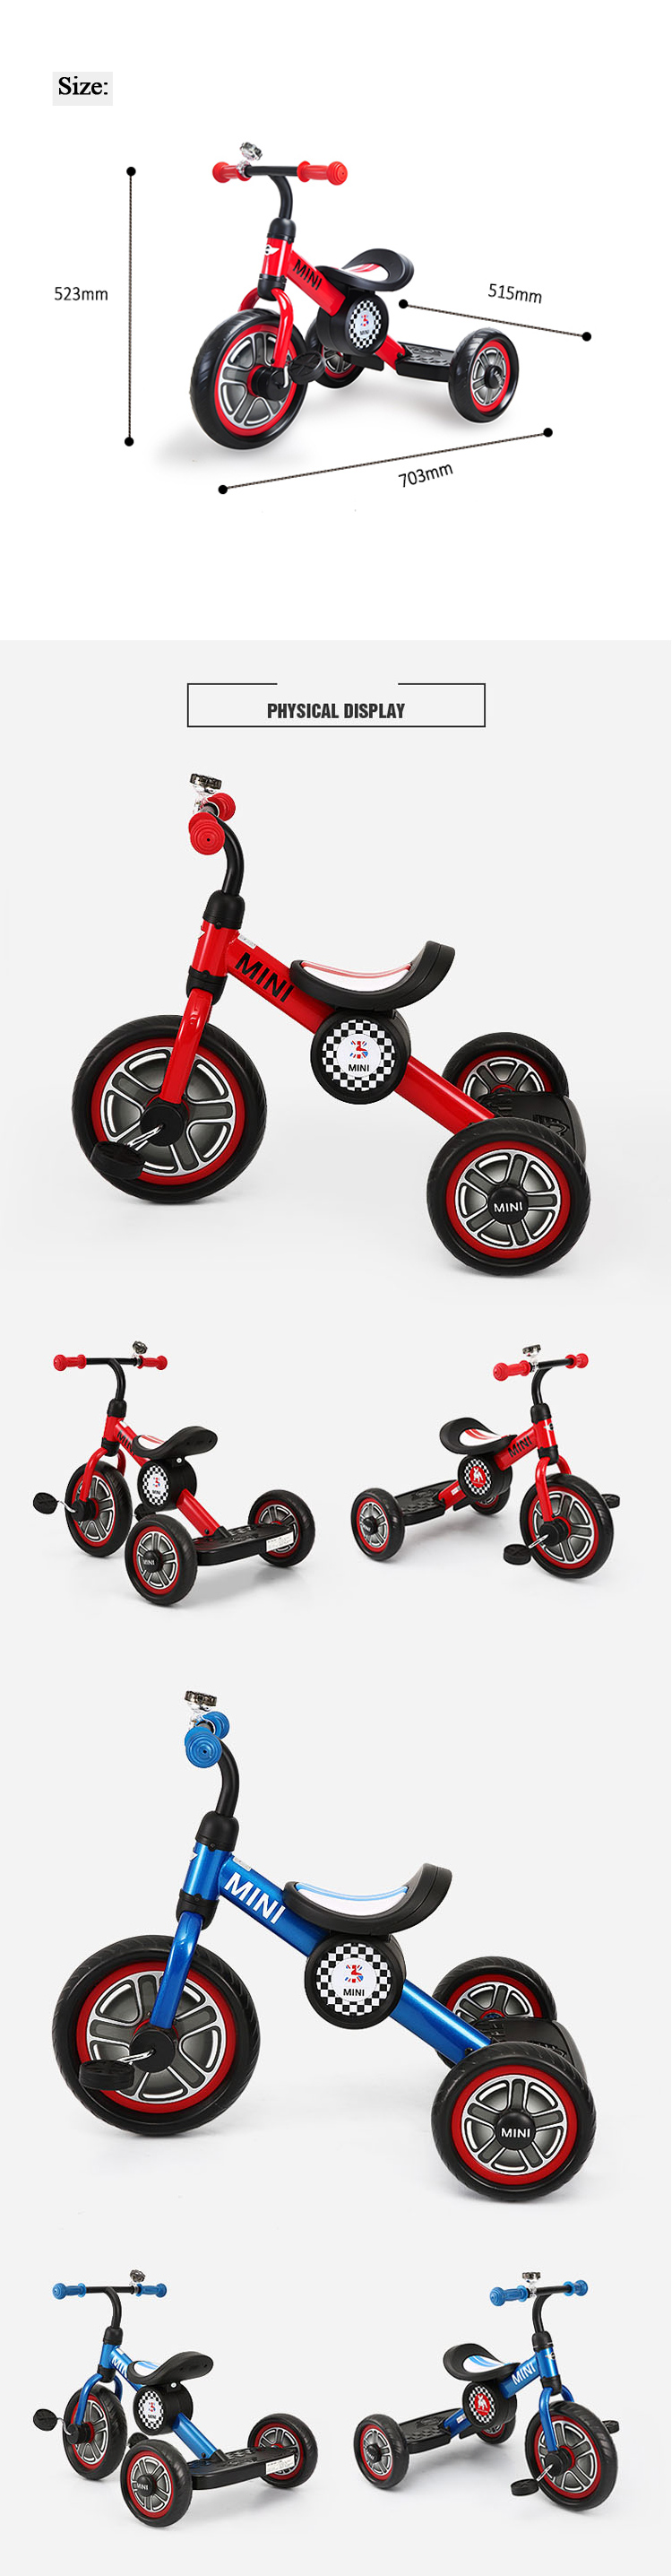 RASTAR toddler ride 3 wheels bike MINI kid tricycle